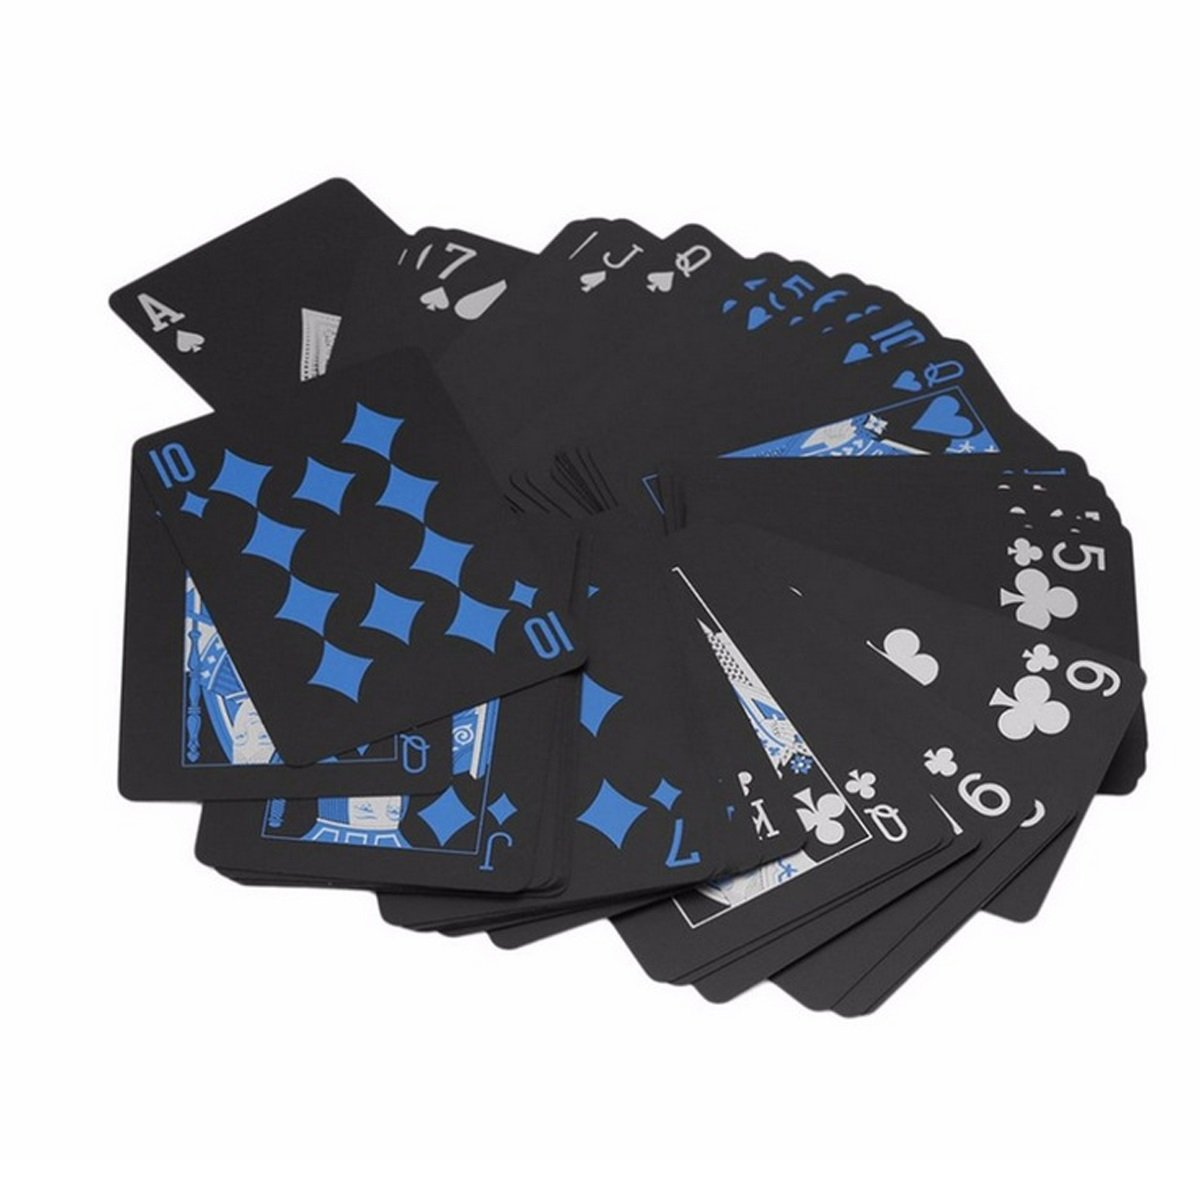 Plastic Cool Color Magic Tricks Deck Tool for Family Party Game PVC Black and Blue Playing Card Blue /& Gold TECHSON Waterproof Poker Cards Set